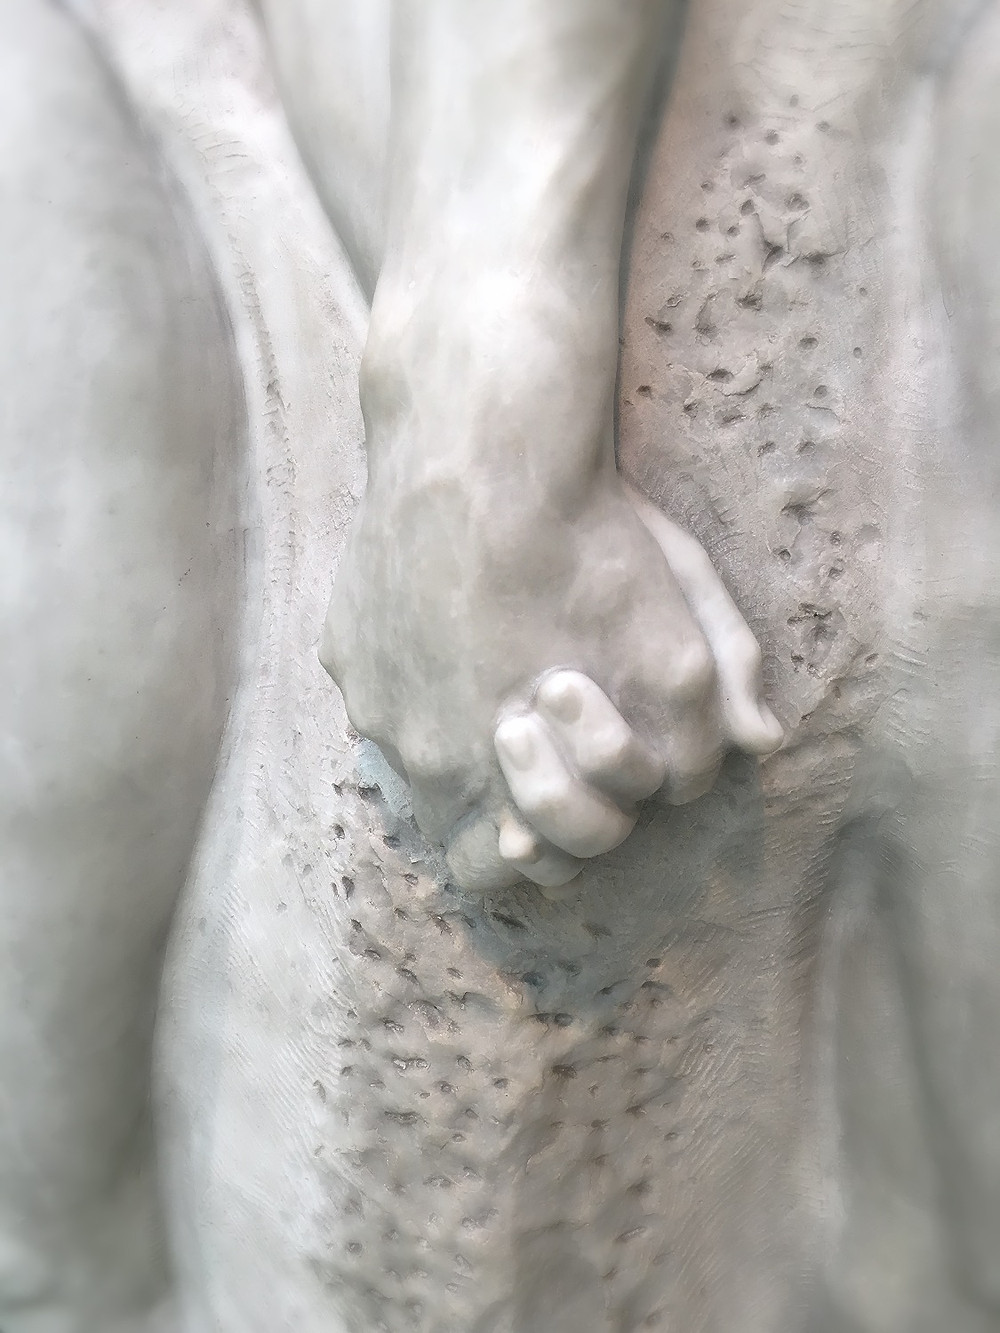 Sculpture  of clasped hands. Photo by Diana Dinverno